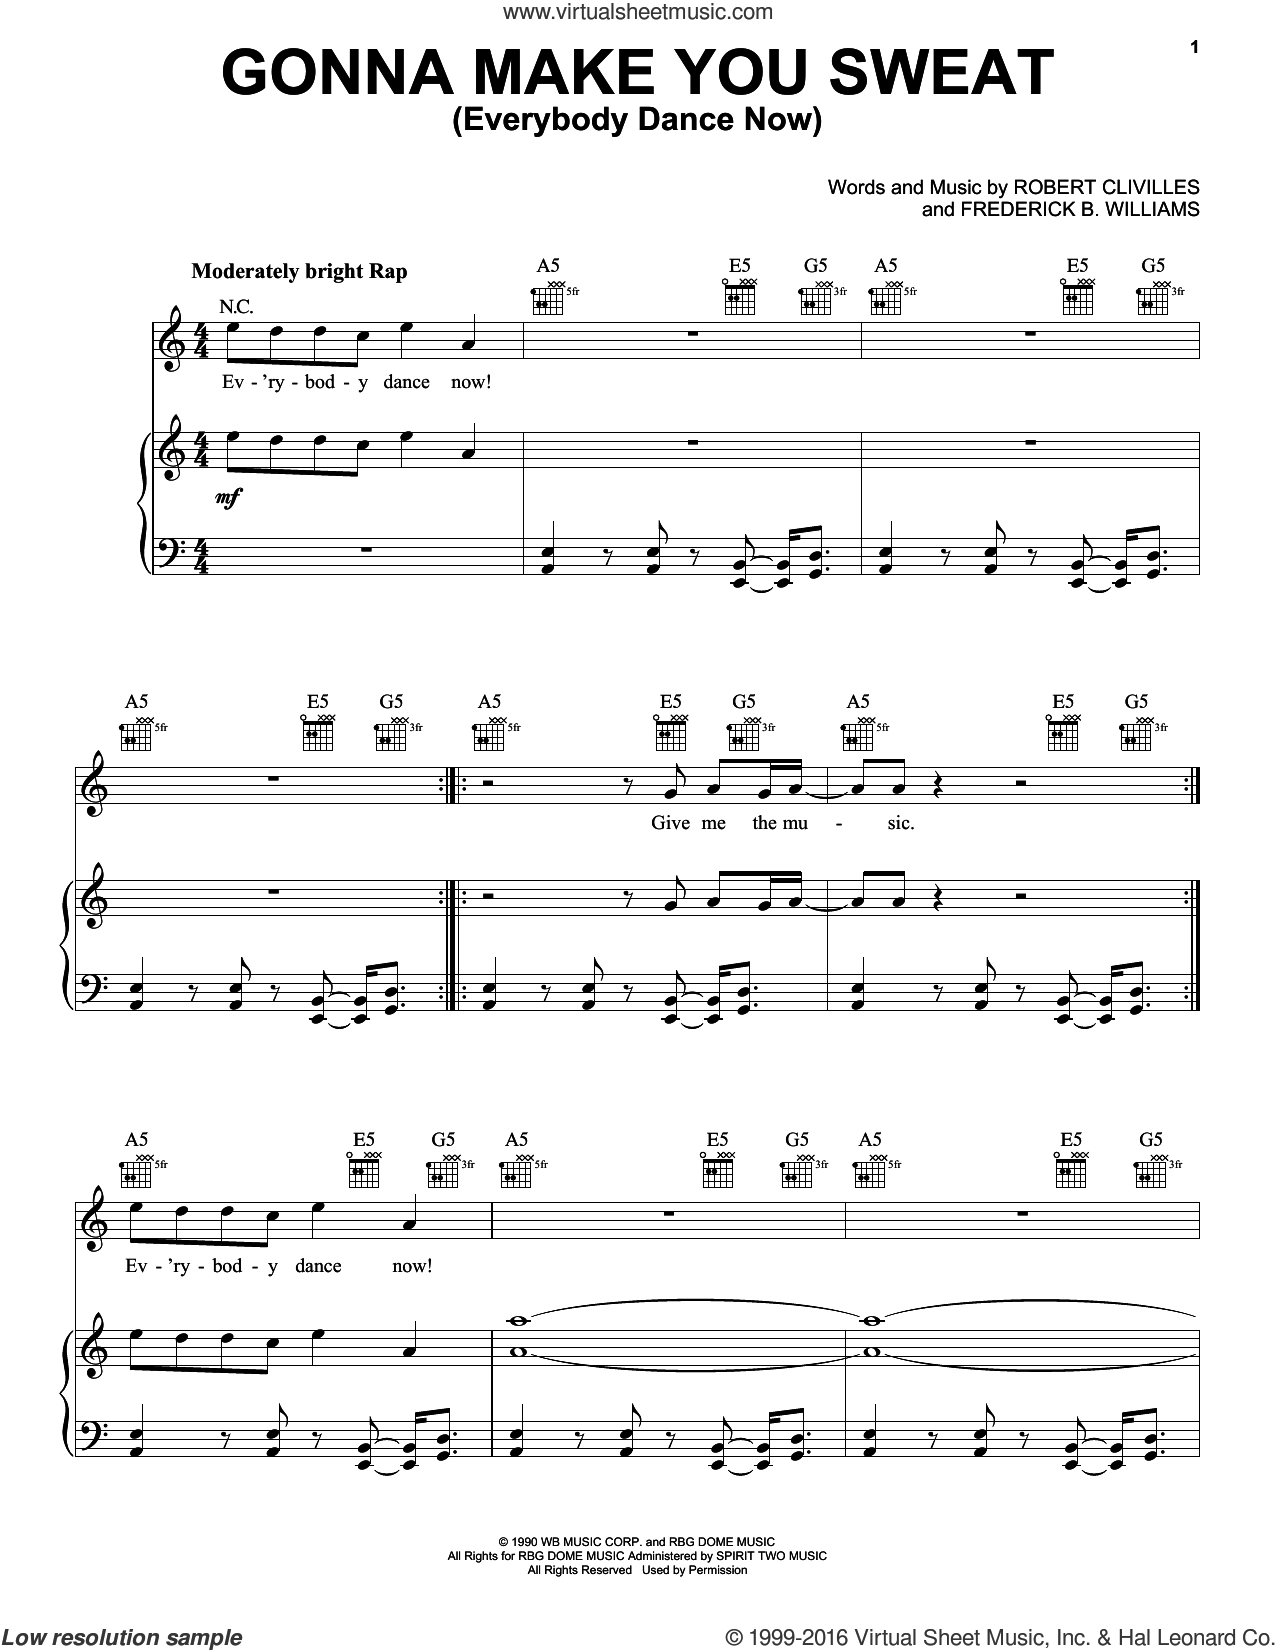 Gonna Make You Sweat (Everybody Dance Now) sheet music for voice, piano or guitar by C+C Music Factory, Frederick B. Williams and Robert Clivilles, intermediate skill level